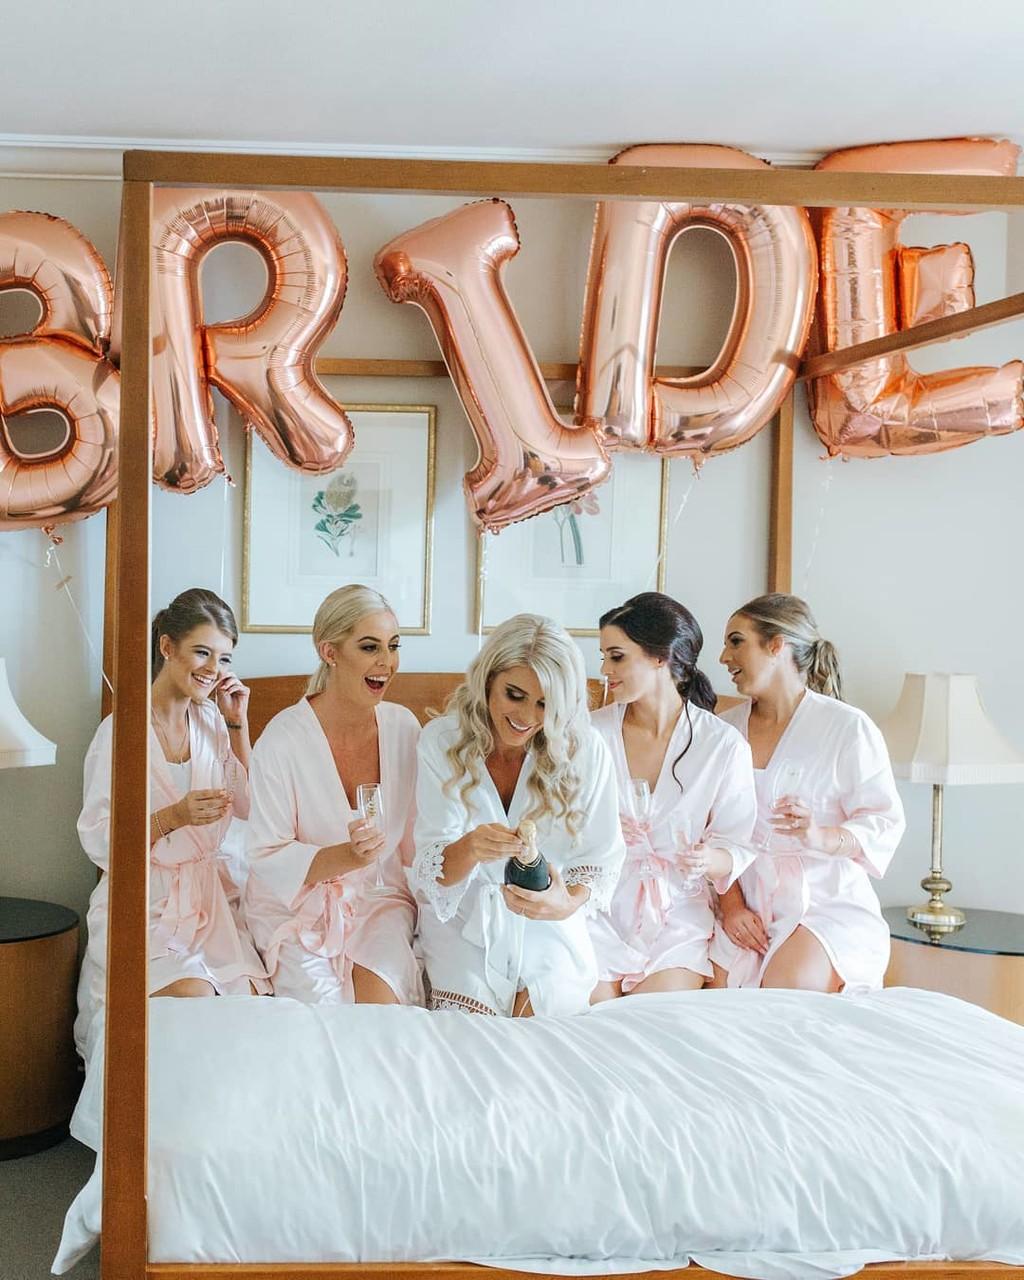 Bride squad goals / #LeRose keepsakes make capturing moments